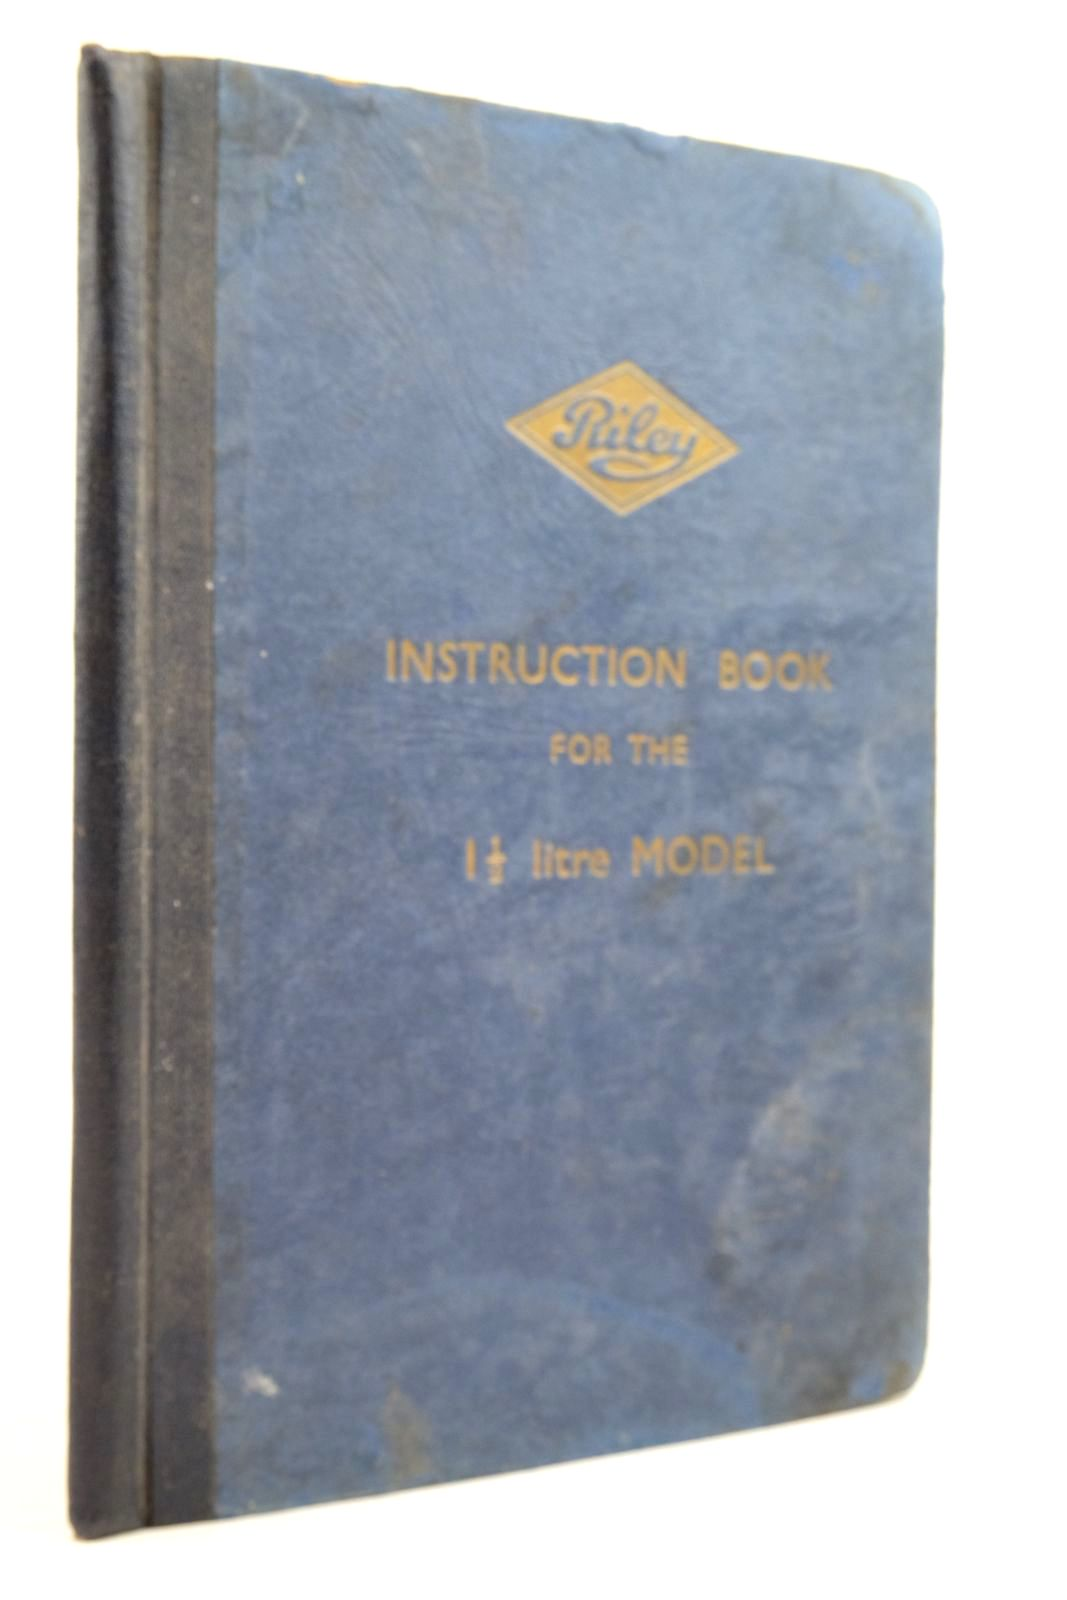 Photo of RILEY INSTRUCTION BOOK FOR THE 1 1/2 LITRE MODEL- Stock Number: 2134622